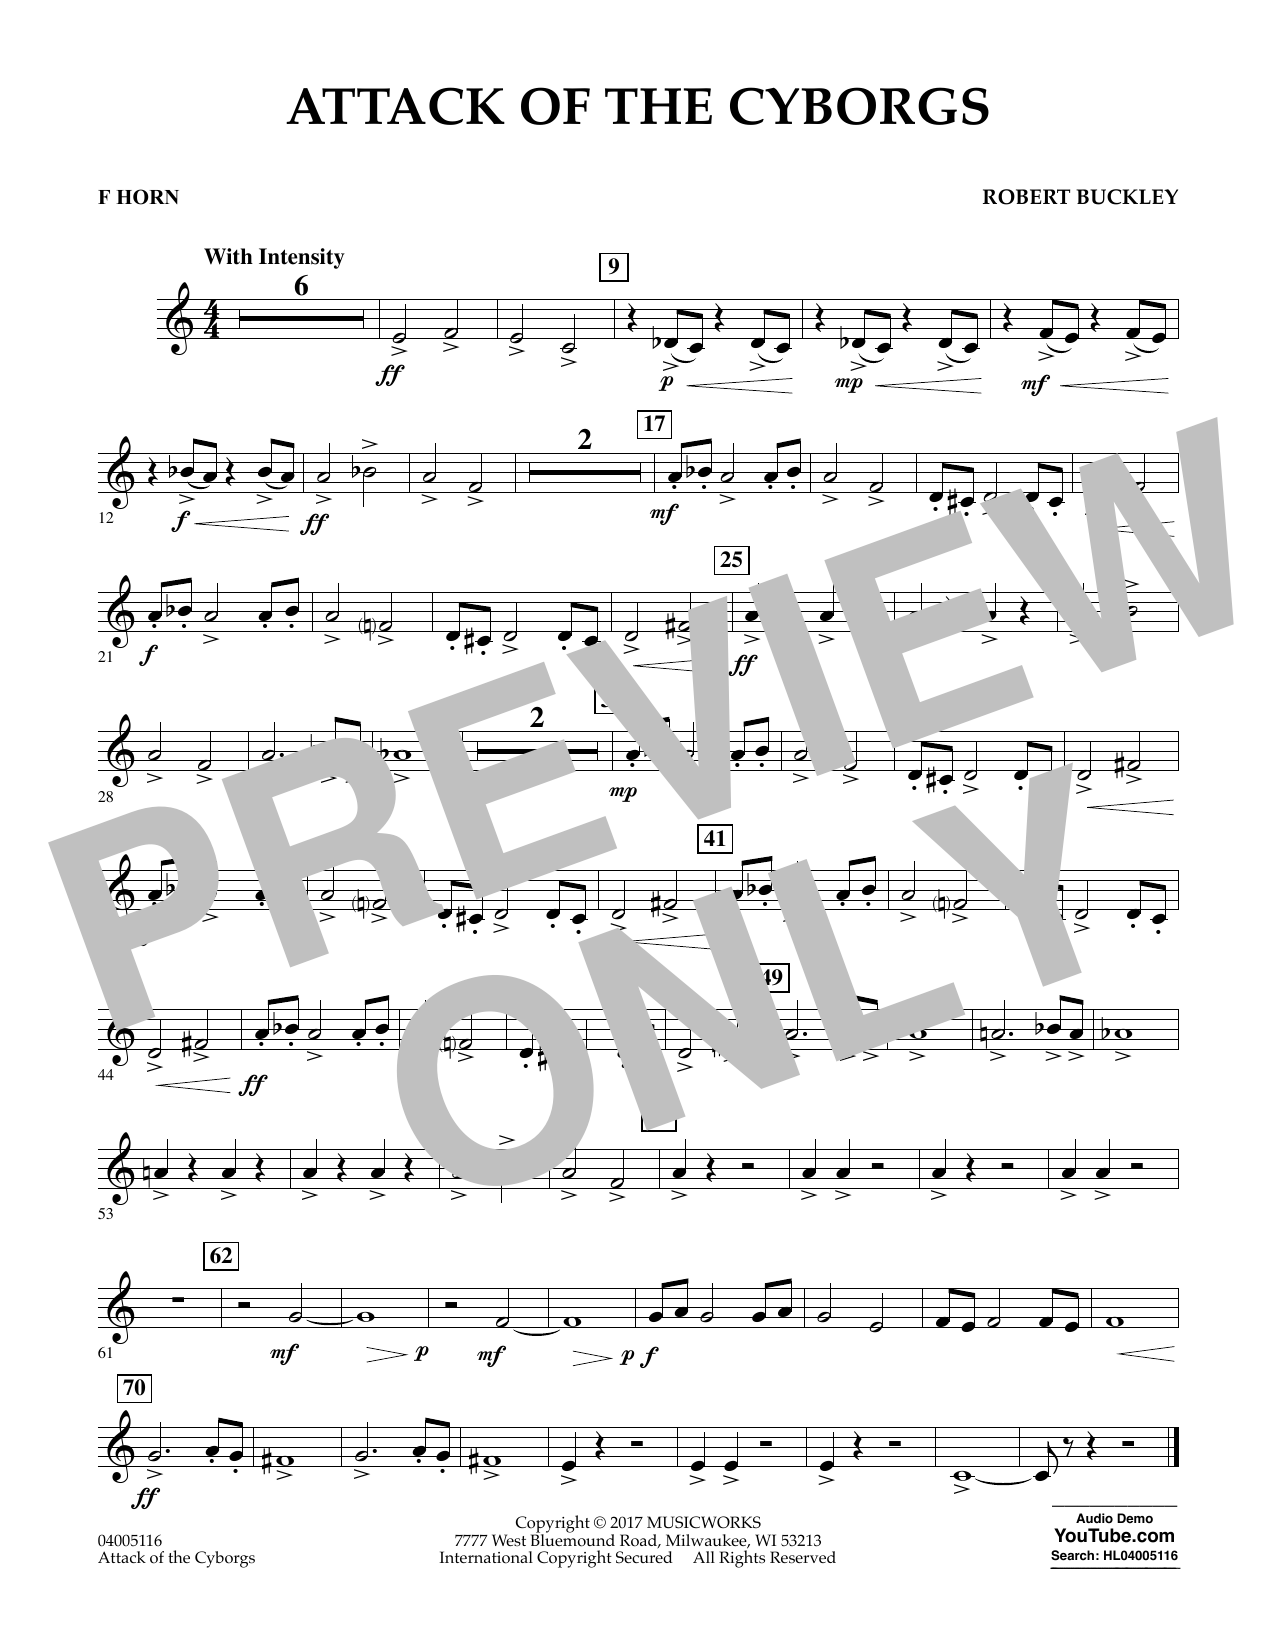 Attack of the Cyborgs - F Horn Sheet Music